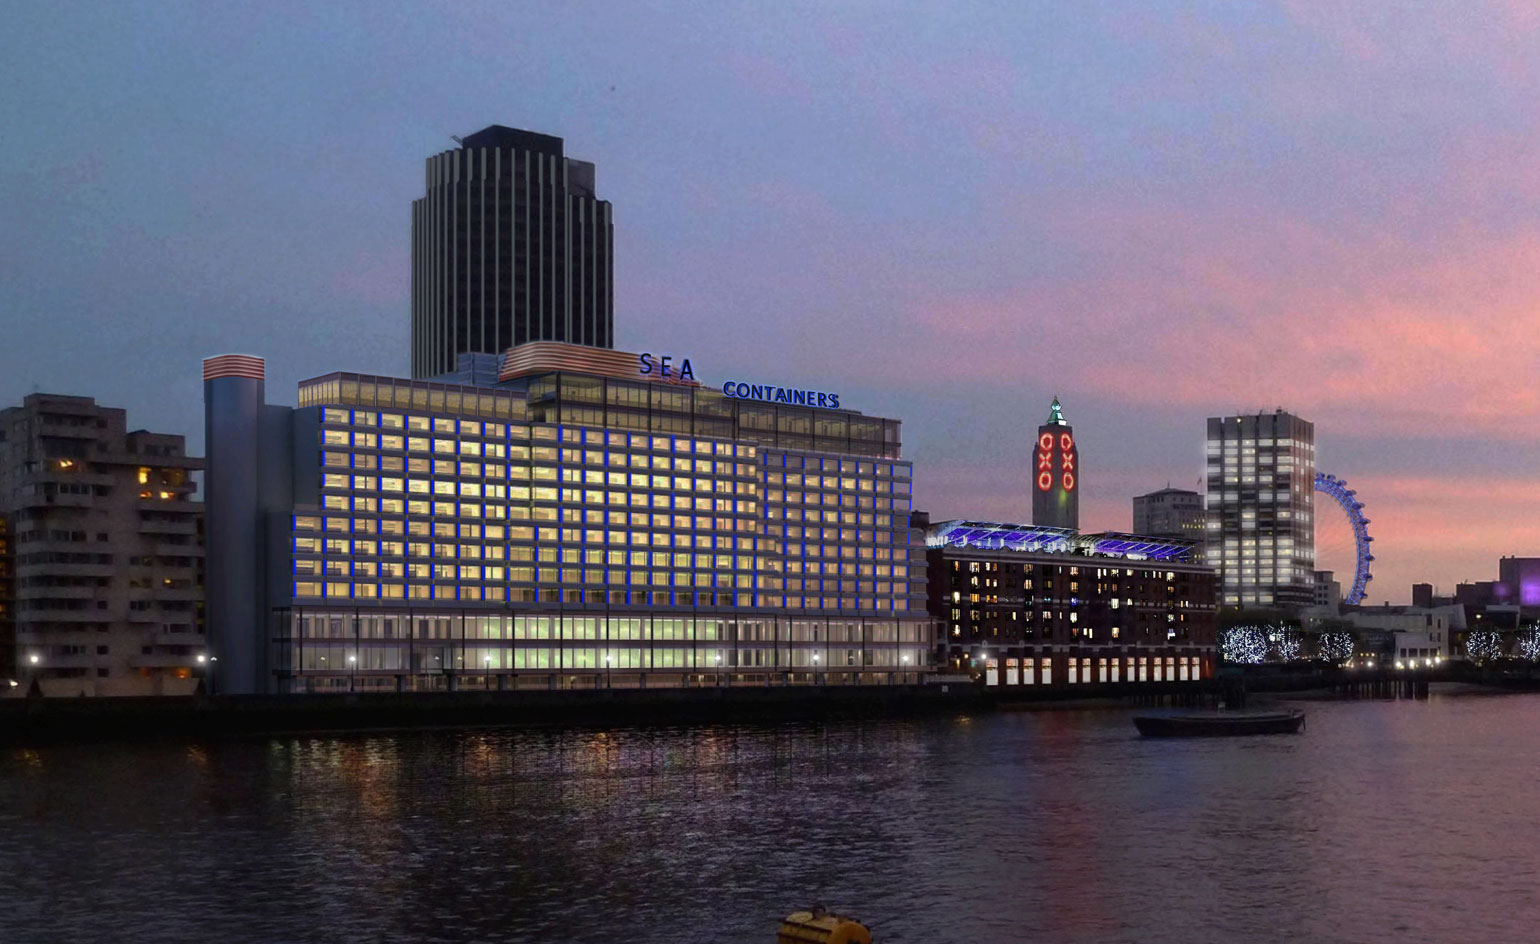 House Design Furniture Mondrian London At Sea Containers Hotel Review London